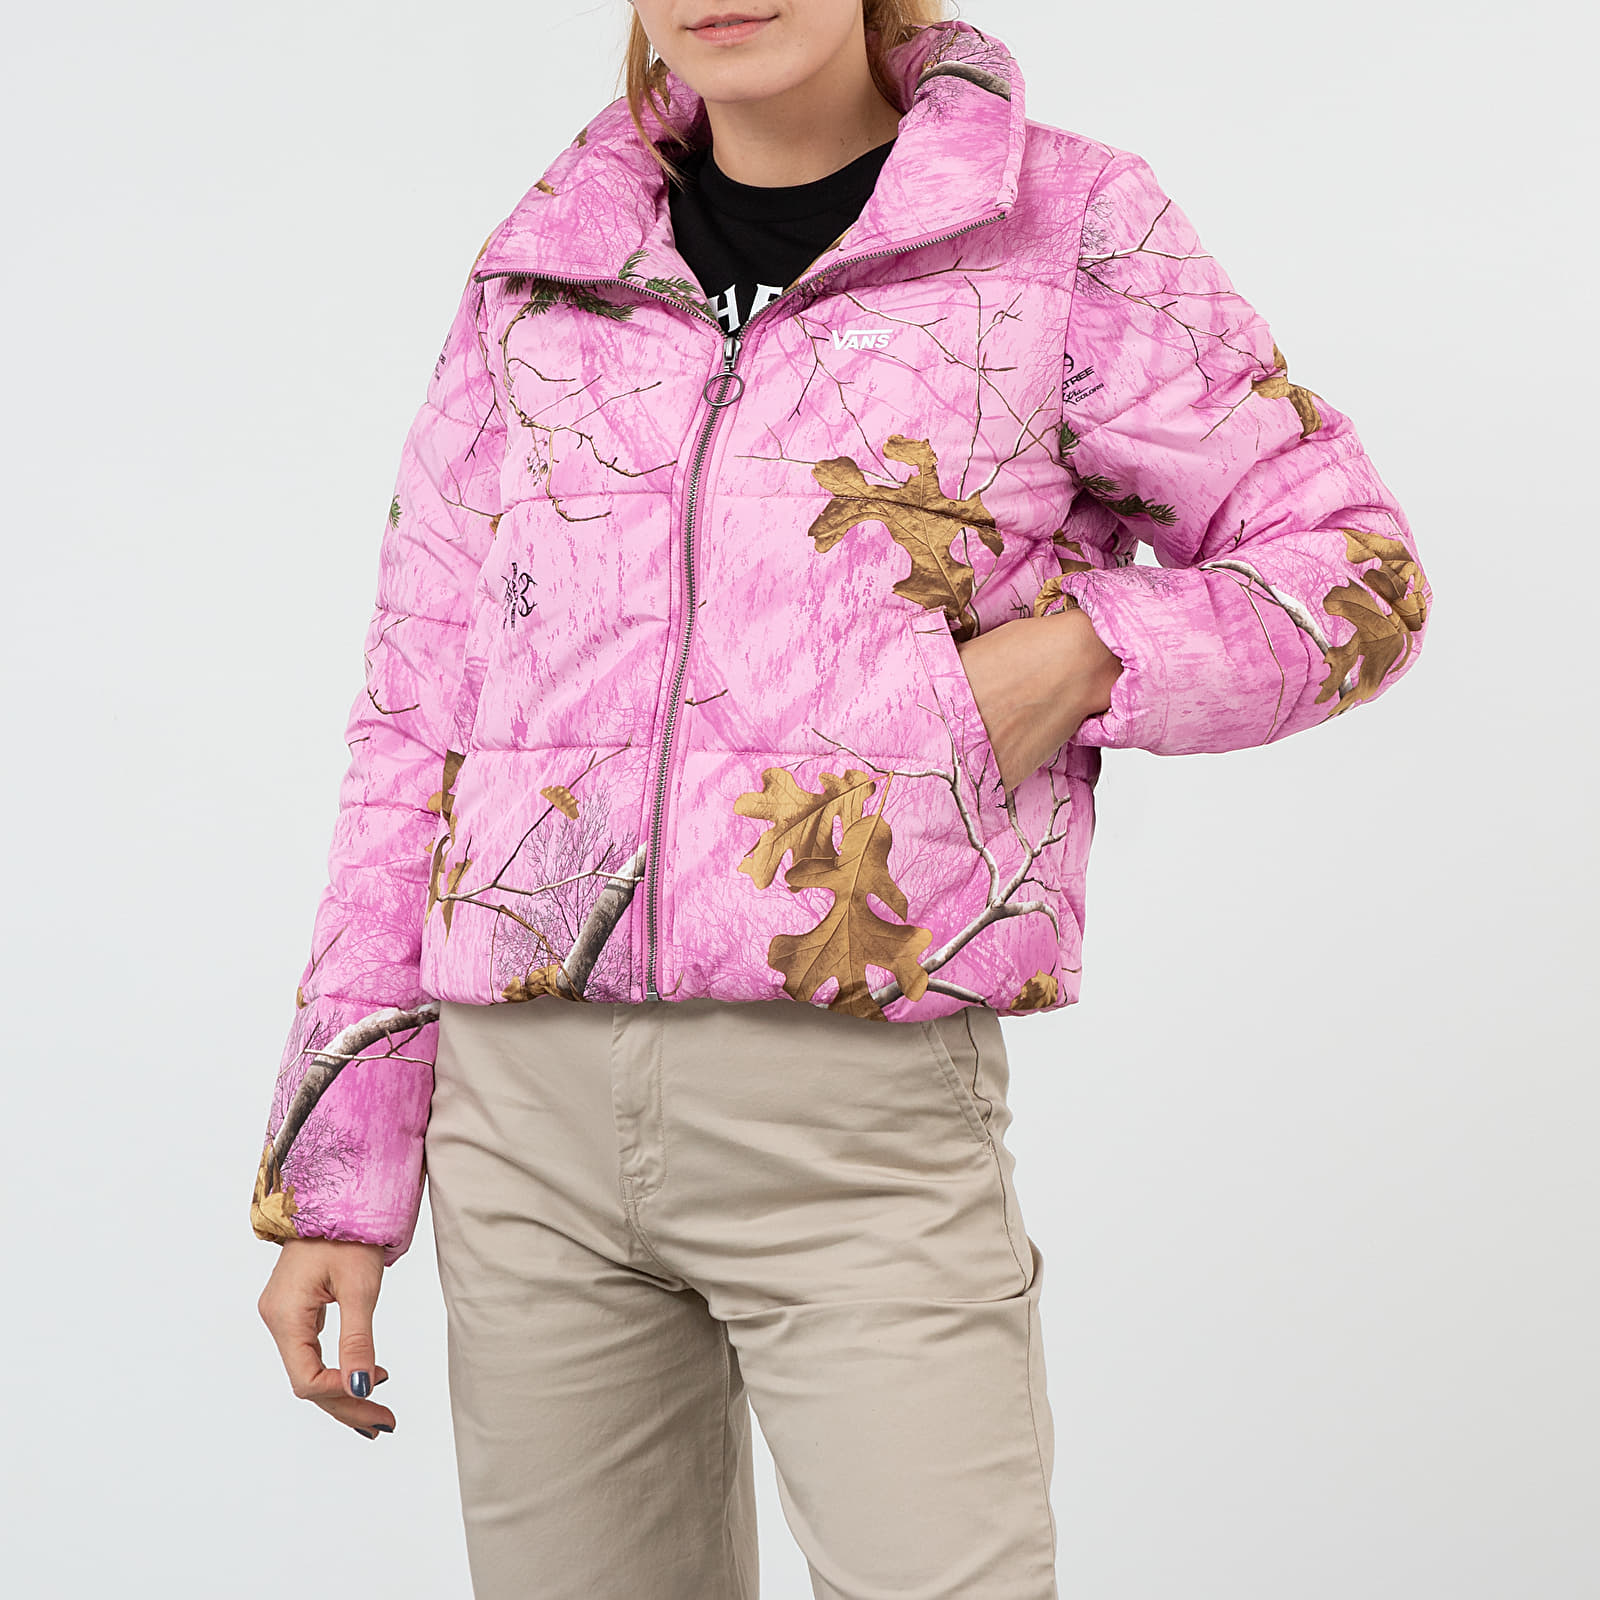 Bundy Vans x Realtree Xtra® Foundry Puffer Jacket Pink